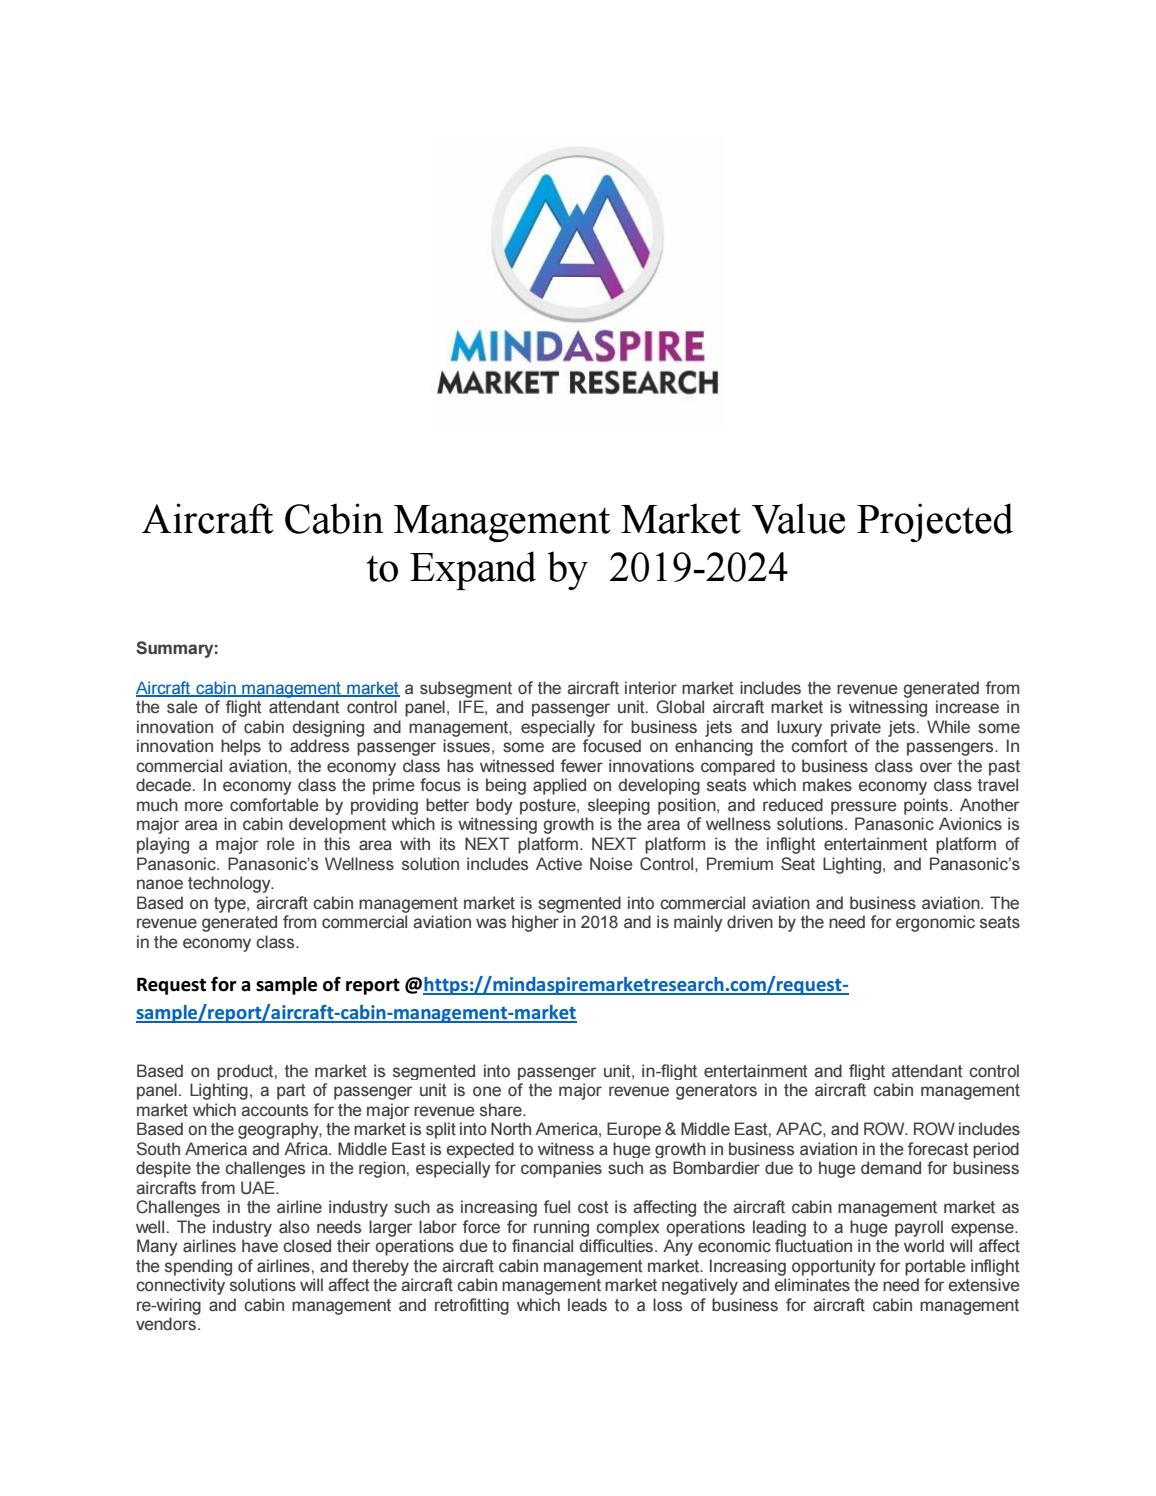 Aircraft Cabin Management Market Value Projected To Expand